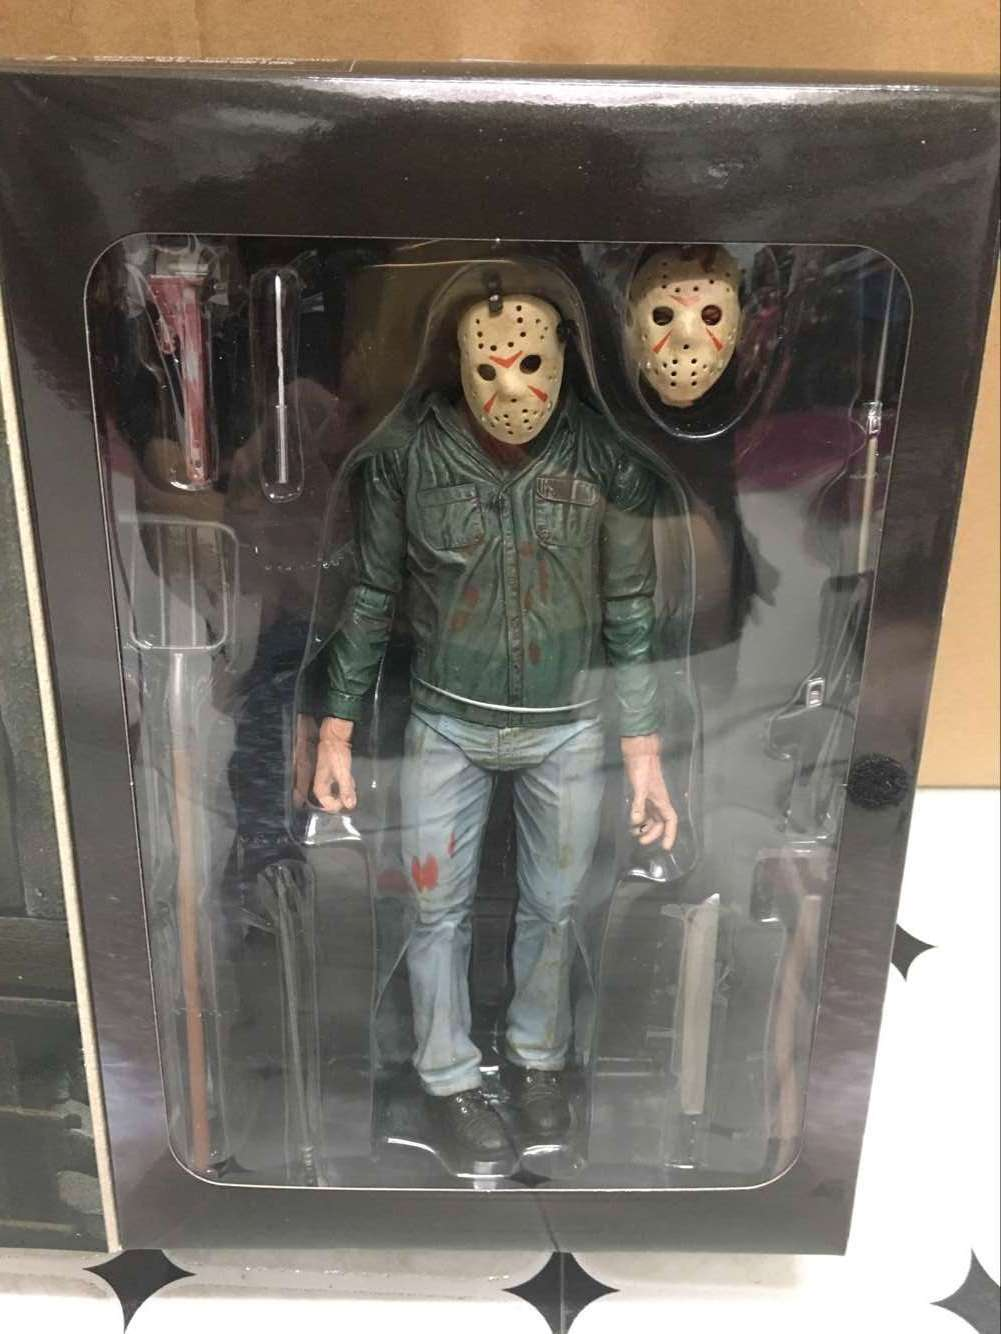 NECA A Nightmare on Elm Street 3: Dream Warriors PVC Action Figure Collectible Model Toy 7 Friday the 13th Jason Voorhees nikko машина nissan skyline gtr r34 street warriors 1 10 901584 в перми